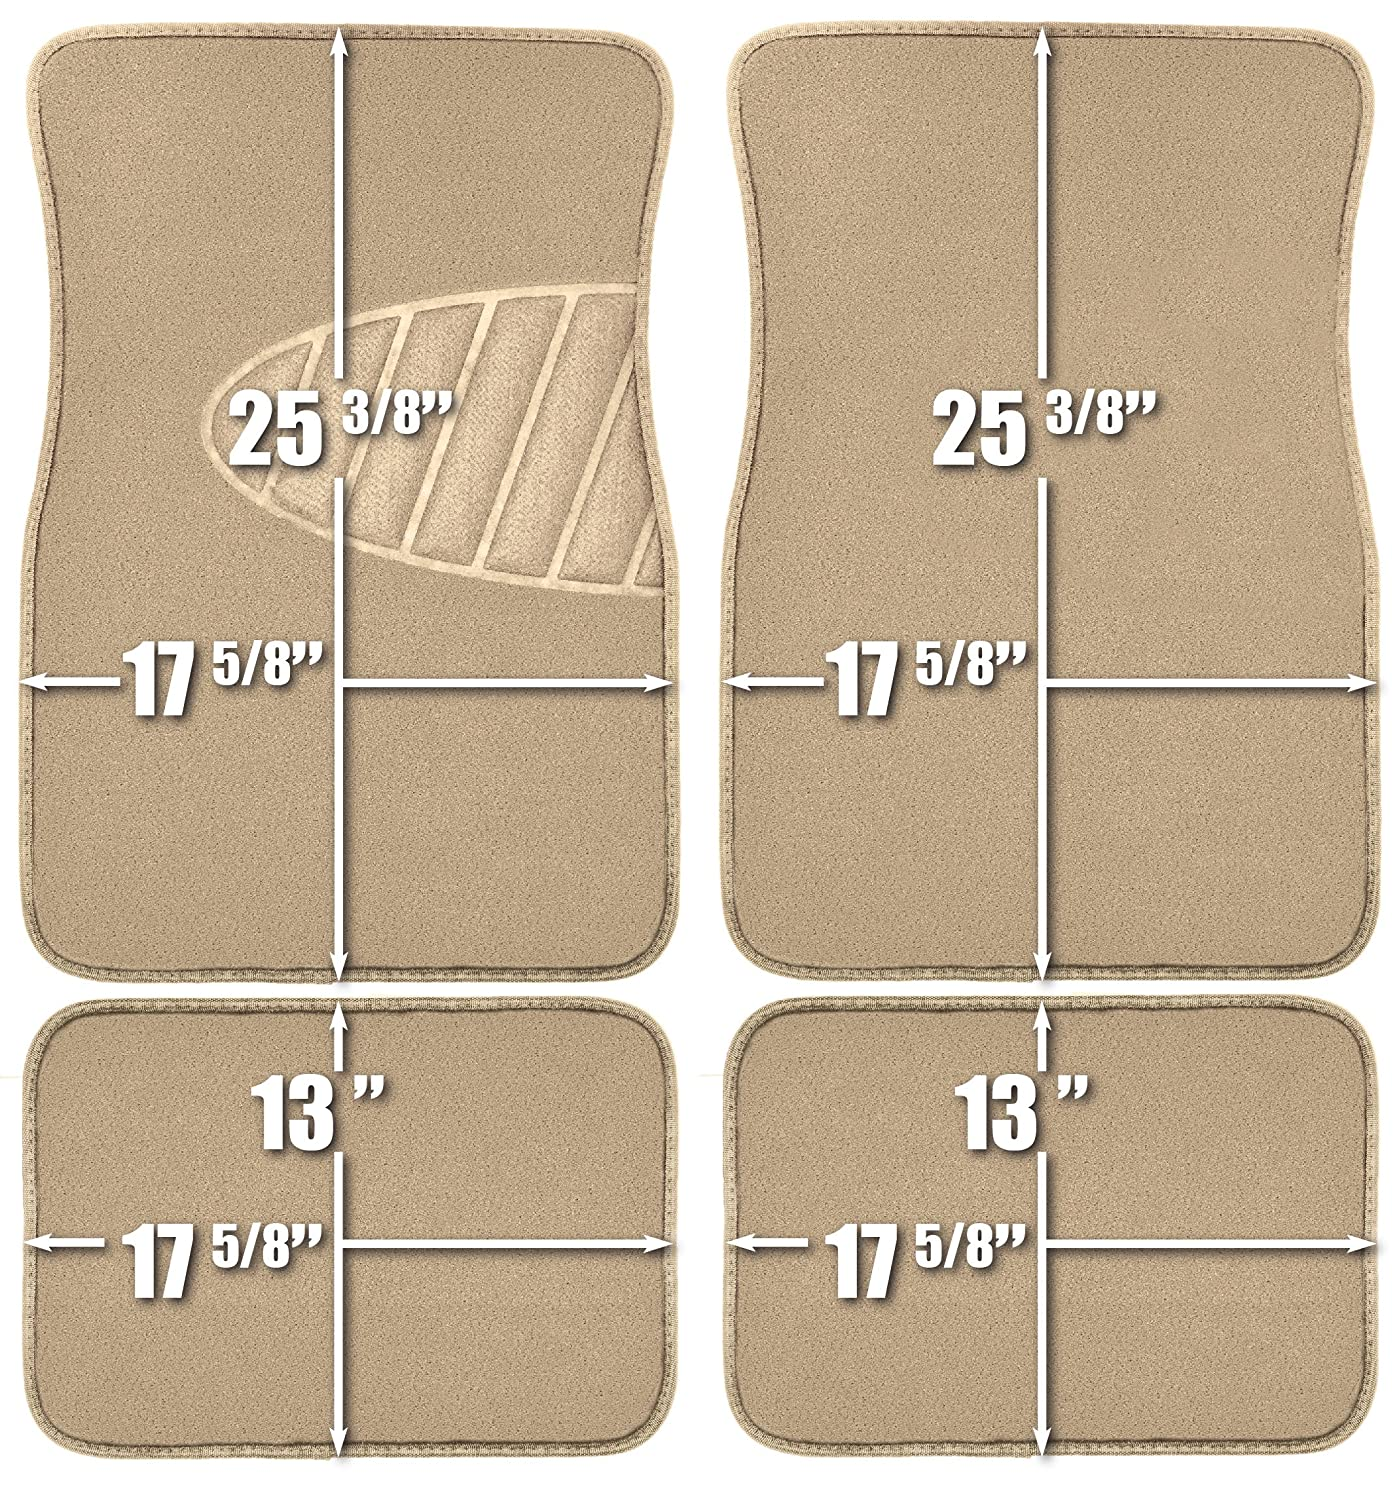 Armor All 78916 4-Piece Tan Heavy Duty Carpet Floor Mat with Heel Pad